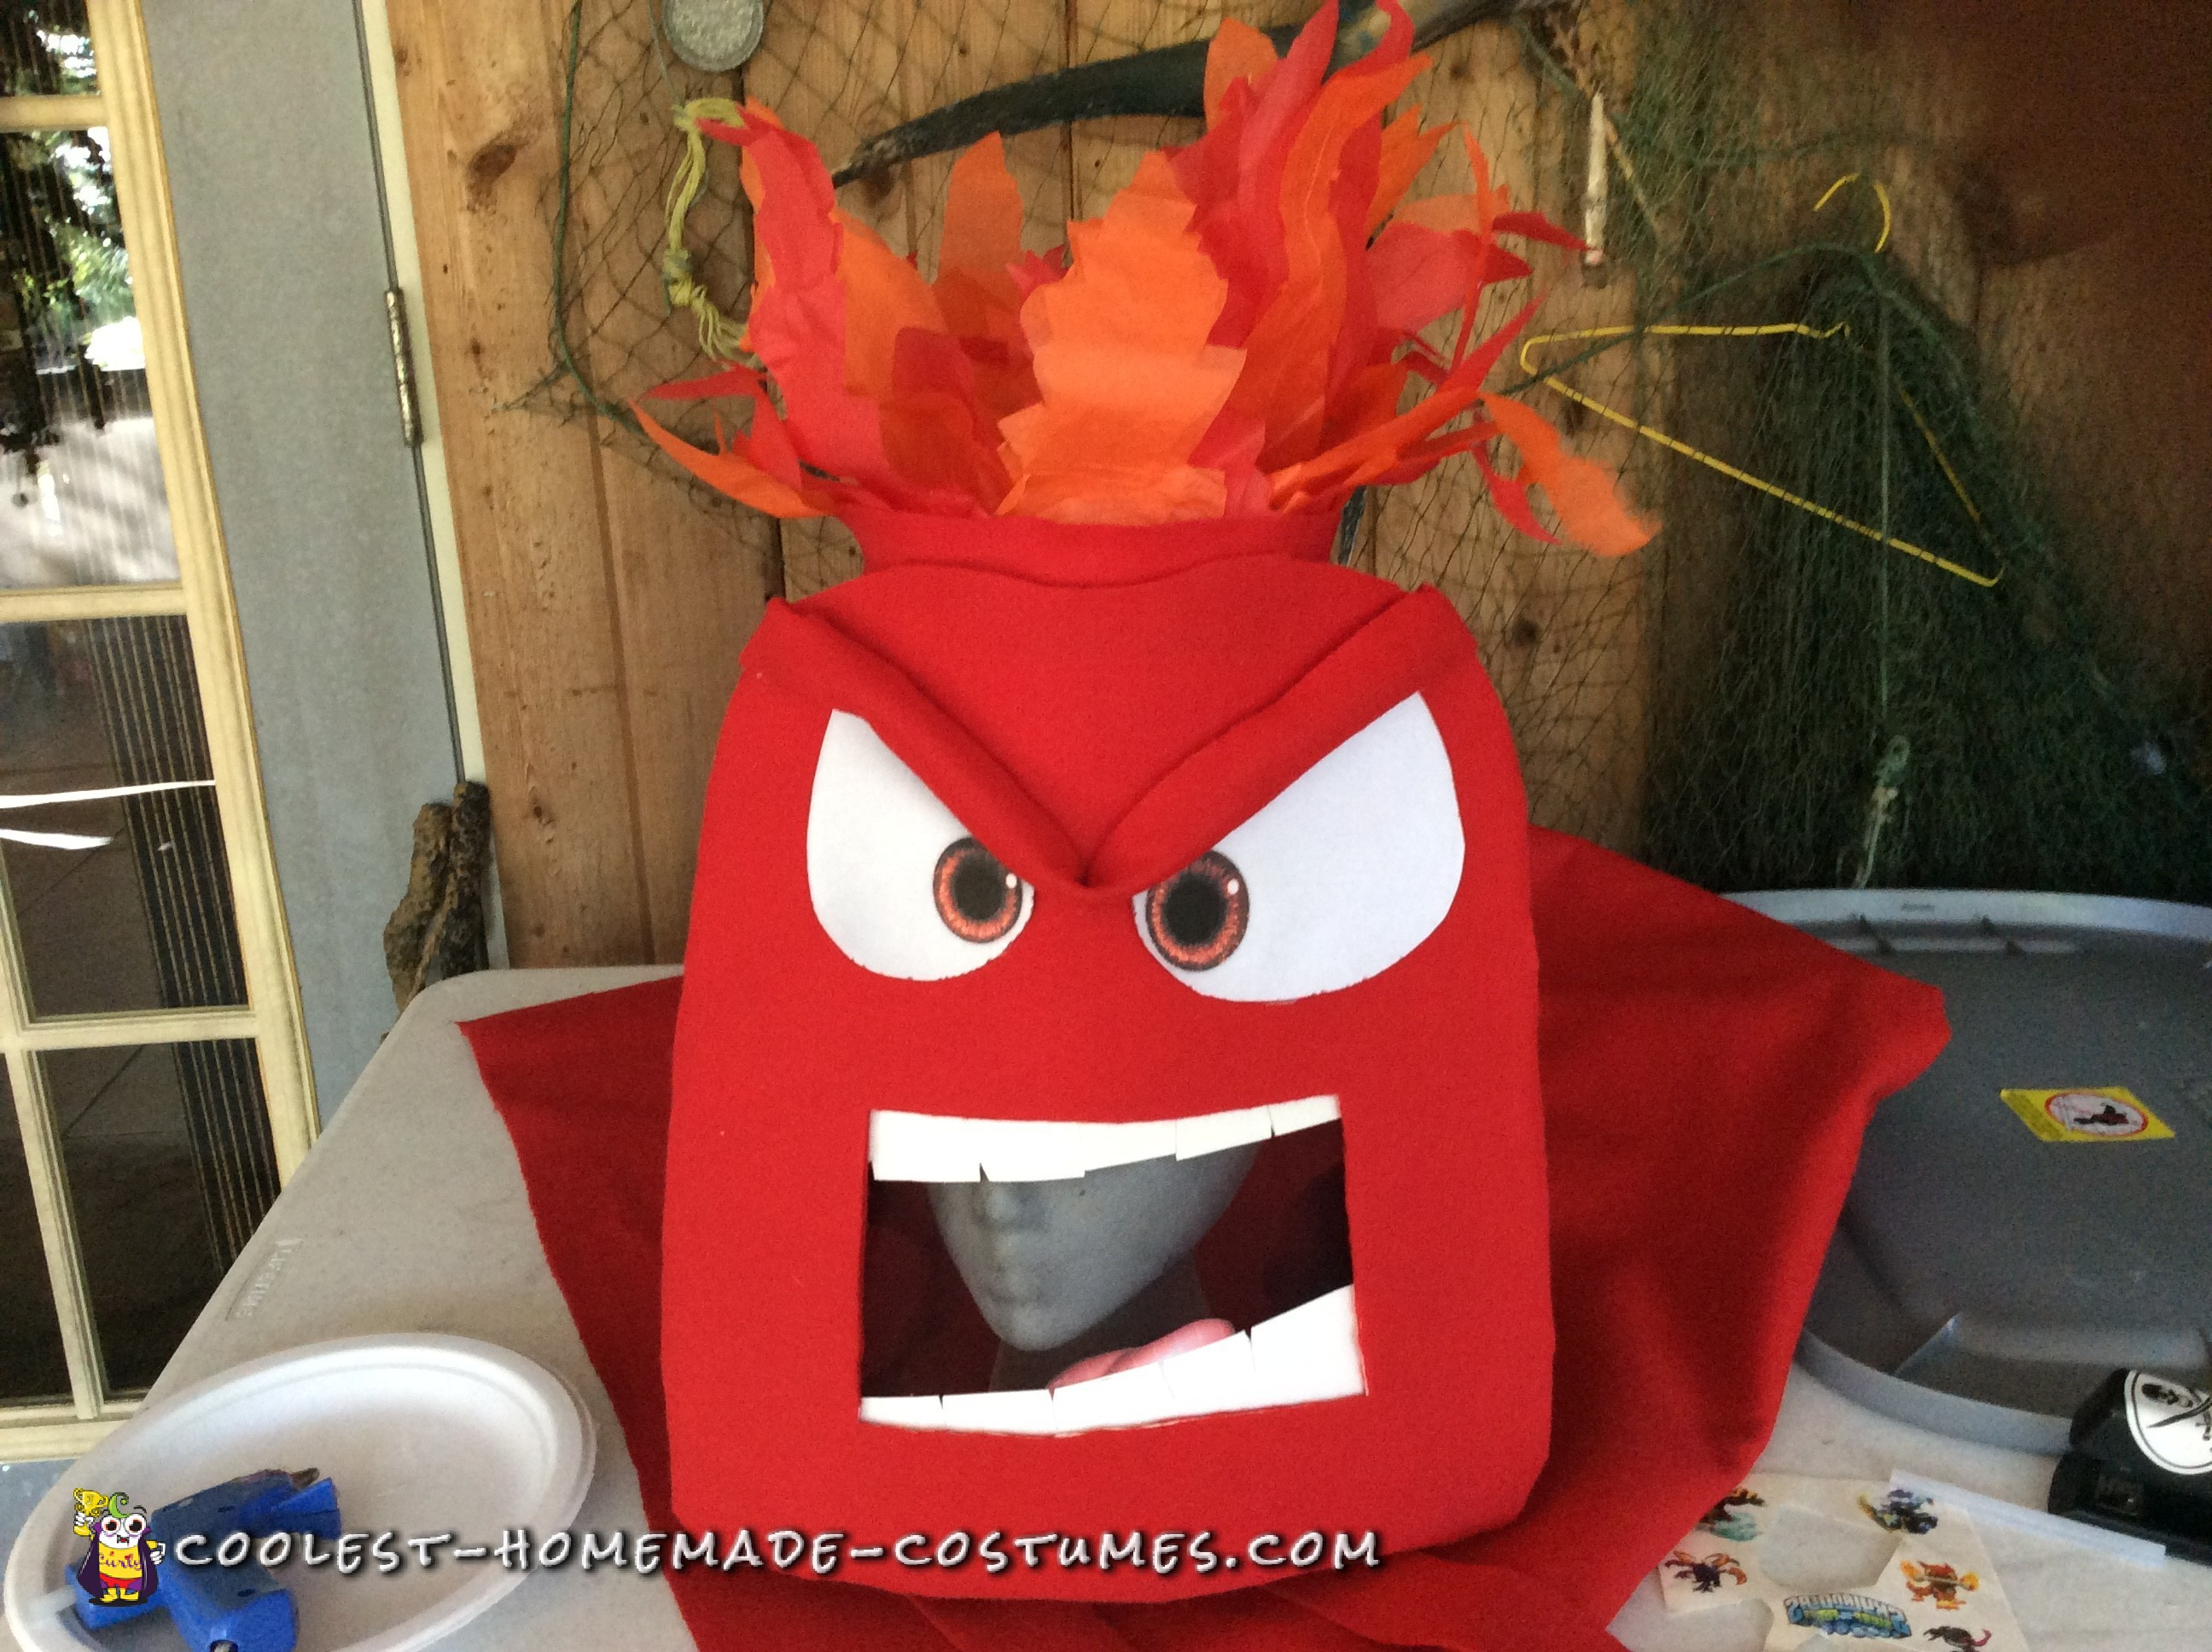 Coolest Anger Form Inside Out Costume